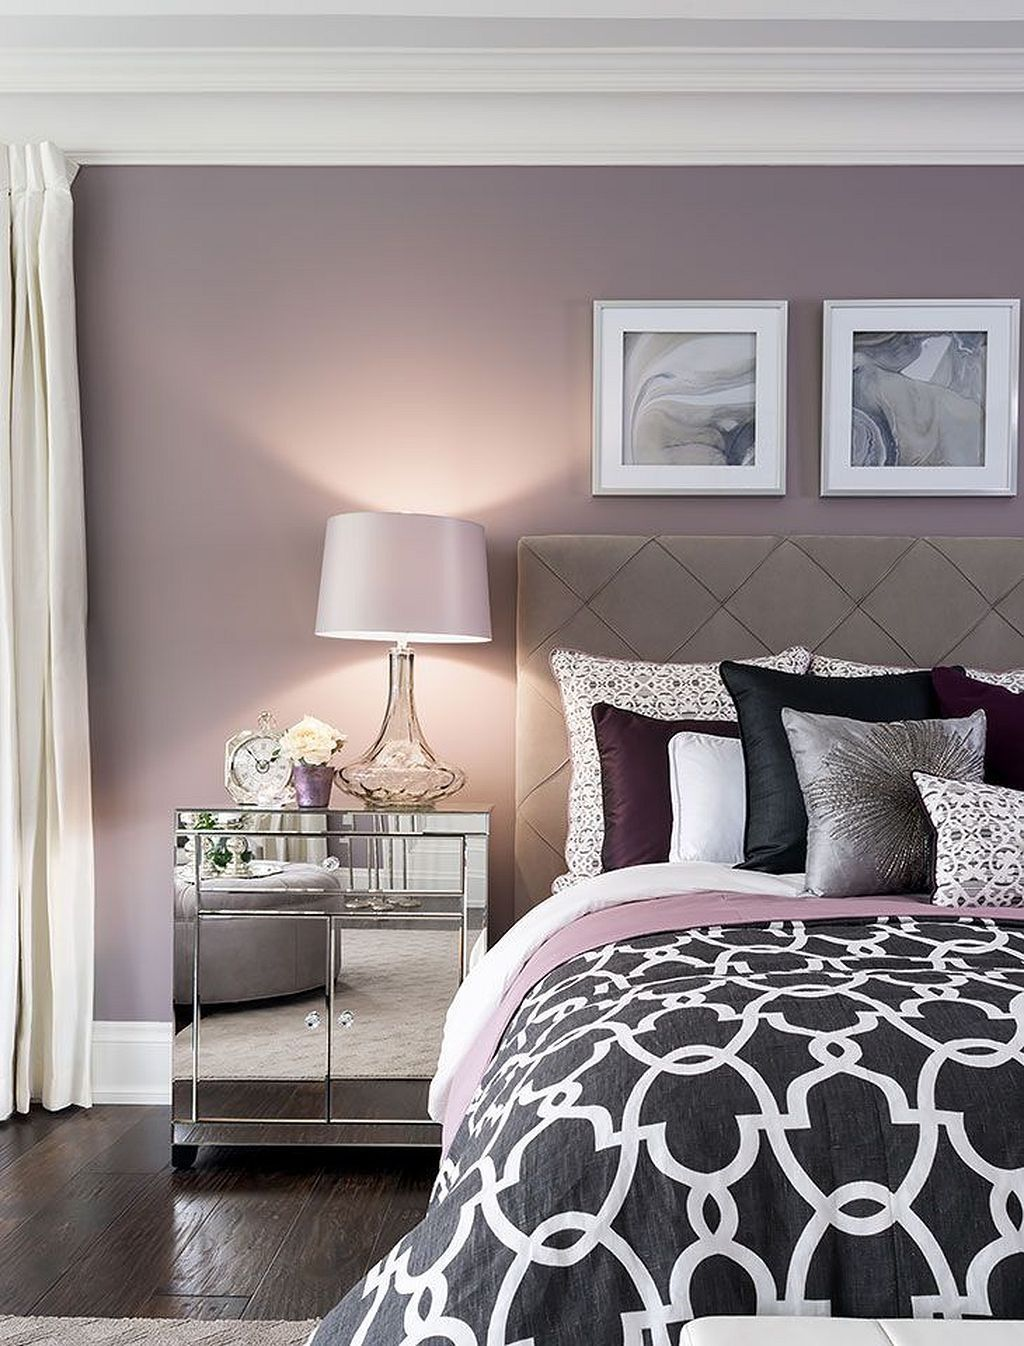 Impressive 50 Small Bedroom Ideas For Couple Bedroom Wall Colors Bedroom Interior Home Decor Bedroom